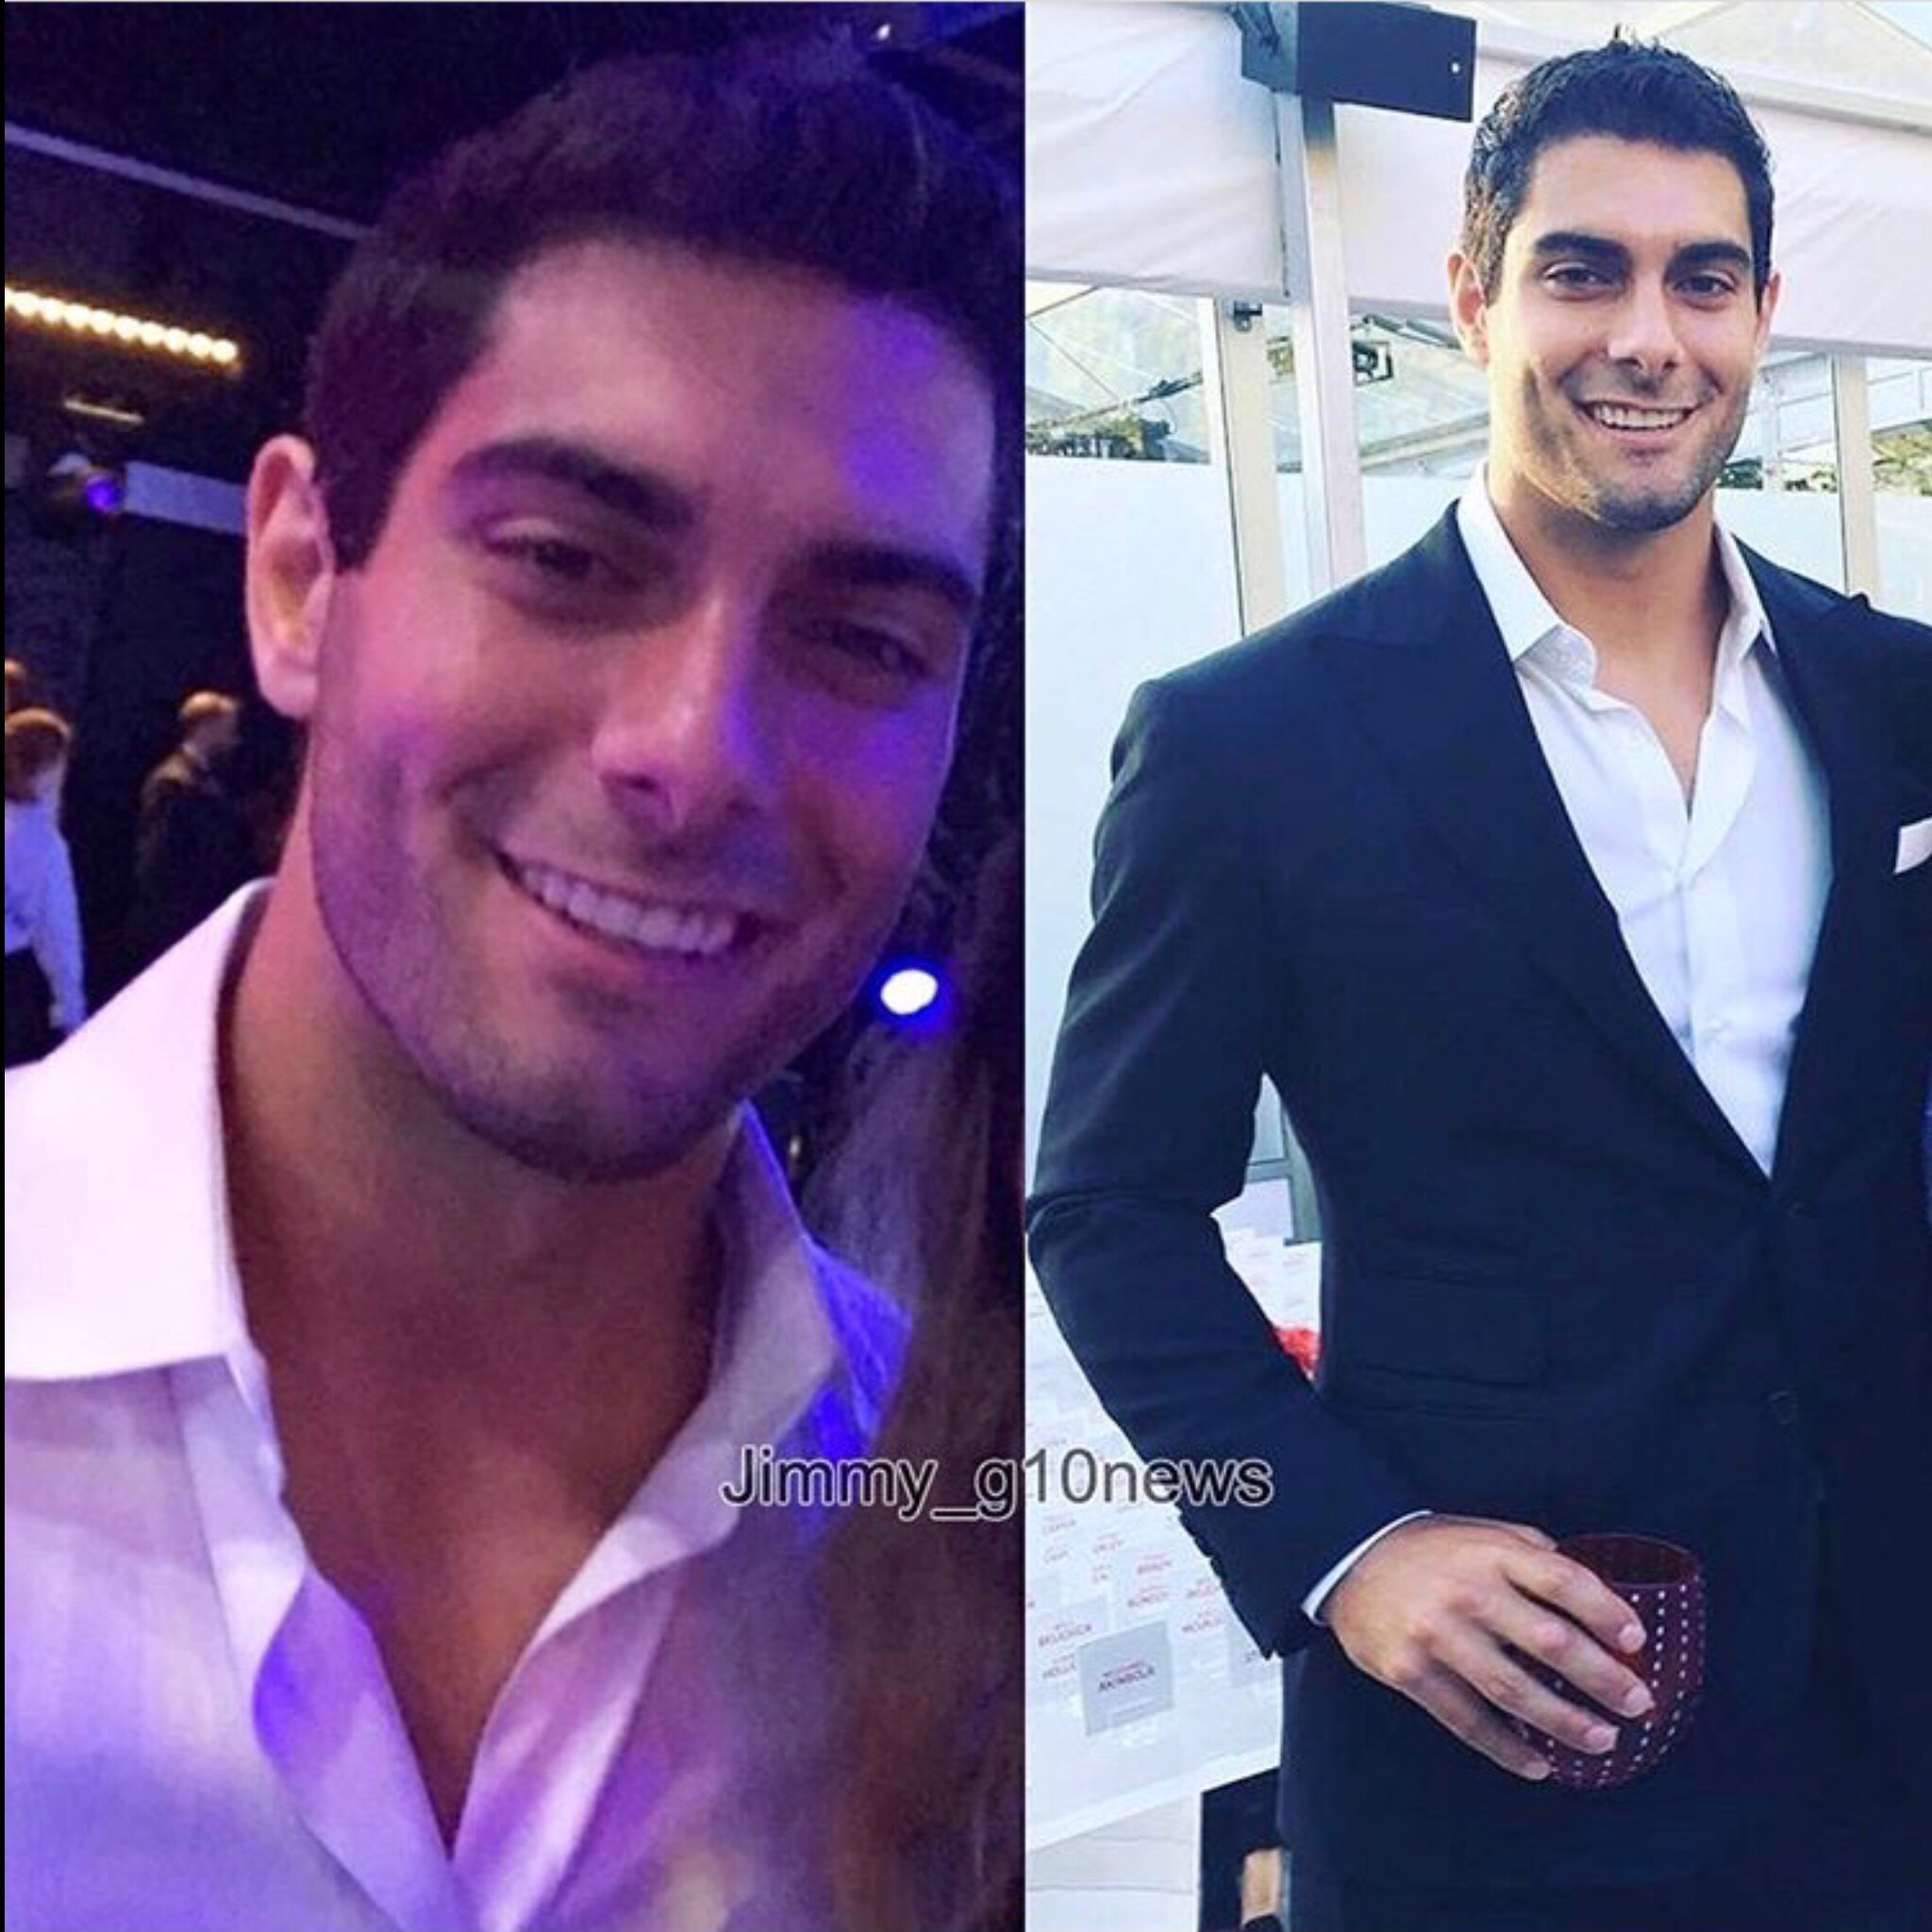 Jimmy Garoppolo Girlfriend: If God Asked Me How To Craft My Ideal Man, This Would Be